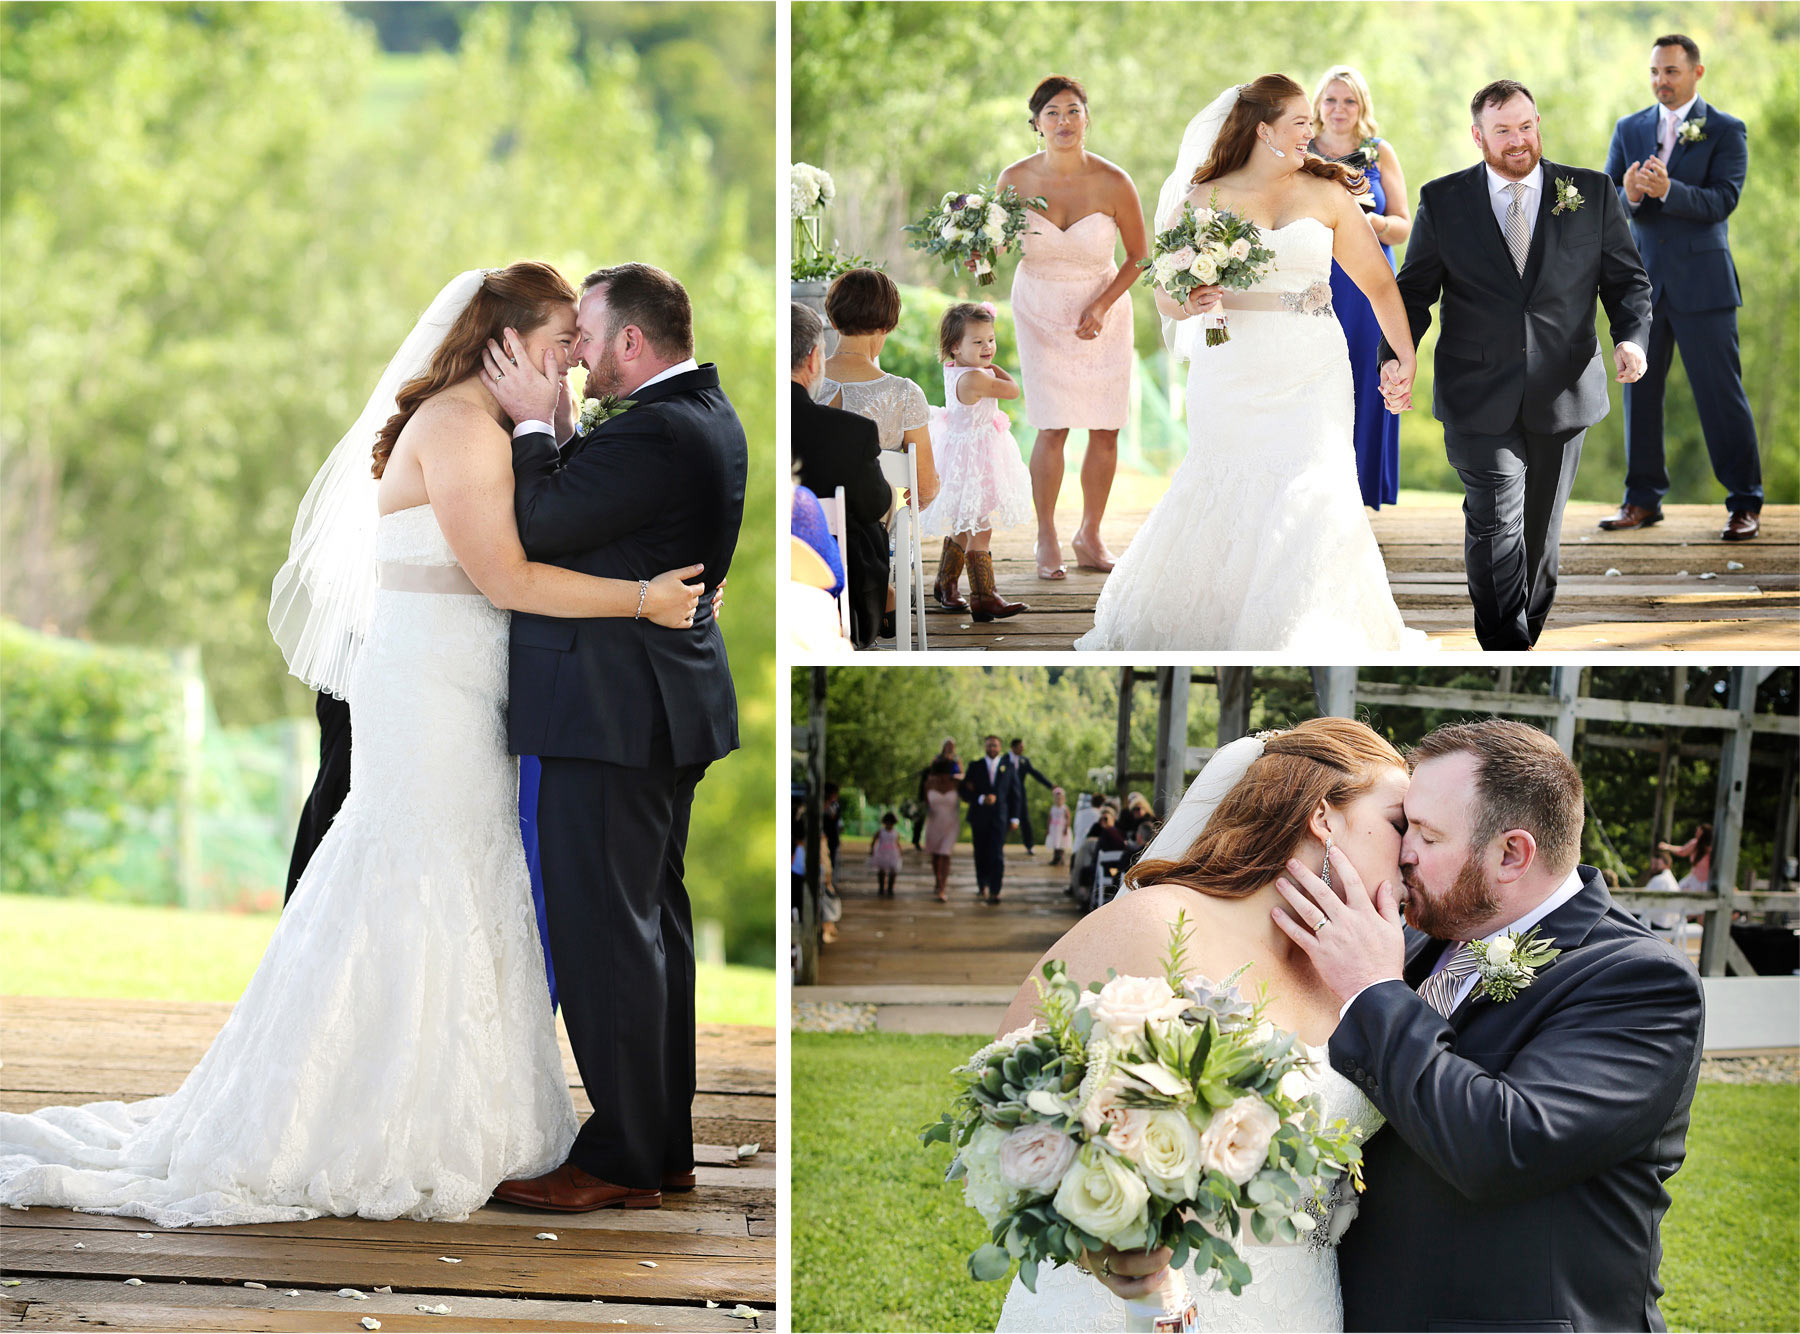 16-Cannon-Falls-Minnesota-Wedding-Photographer-by-Andrew-Vick-Photography-Summer-River-Winery-Ceremony-Bride-Groom-Embrace-Kiss-Vineyard-Becca-and-Donal.jpg